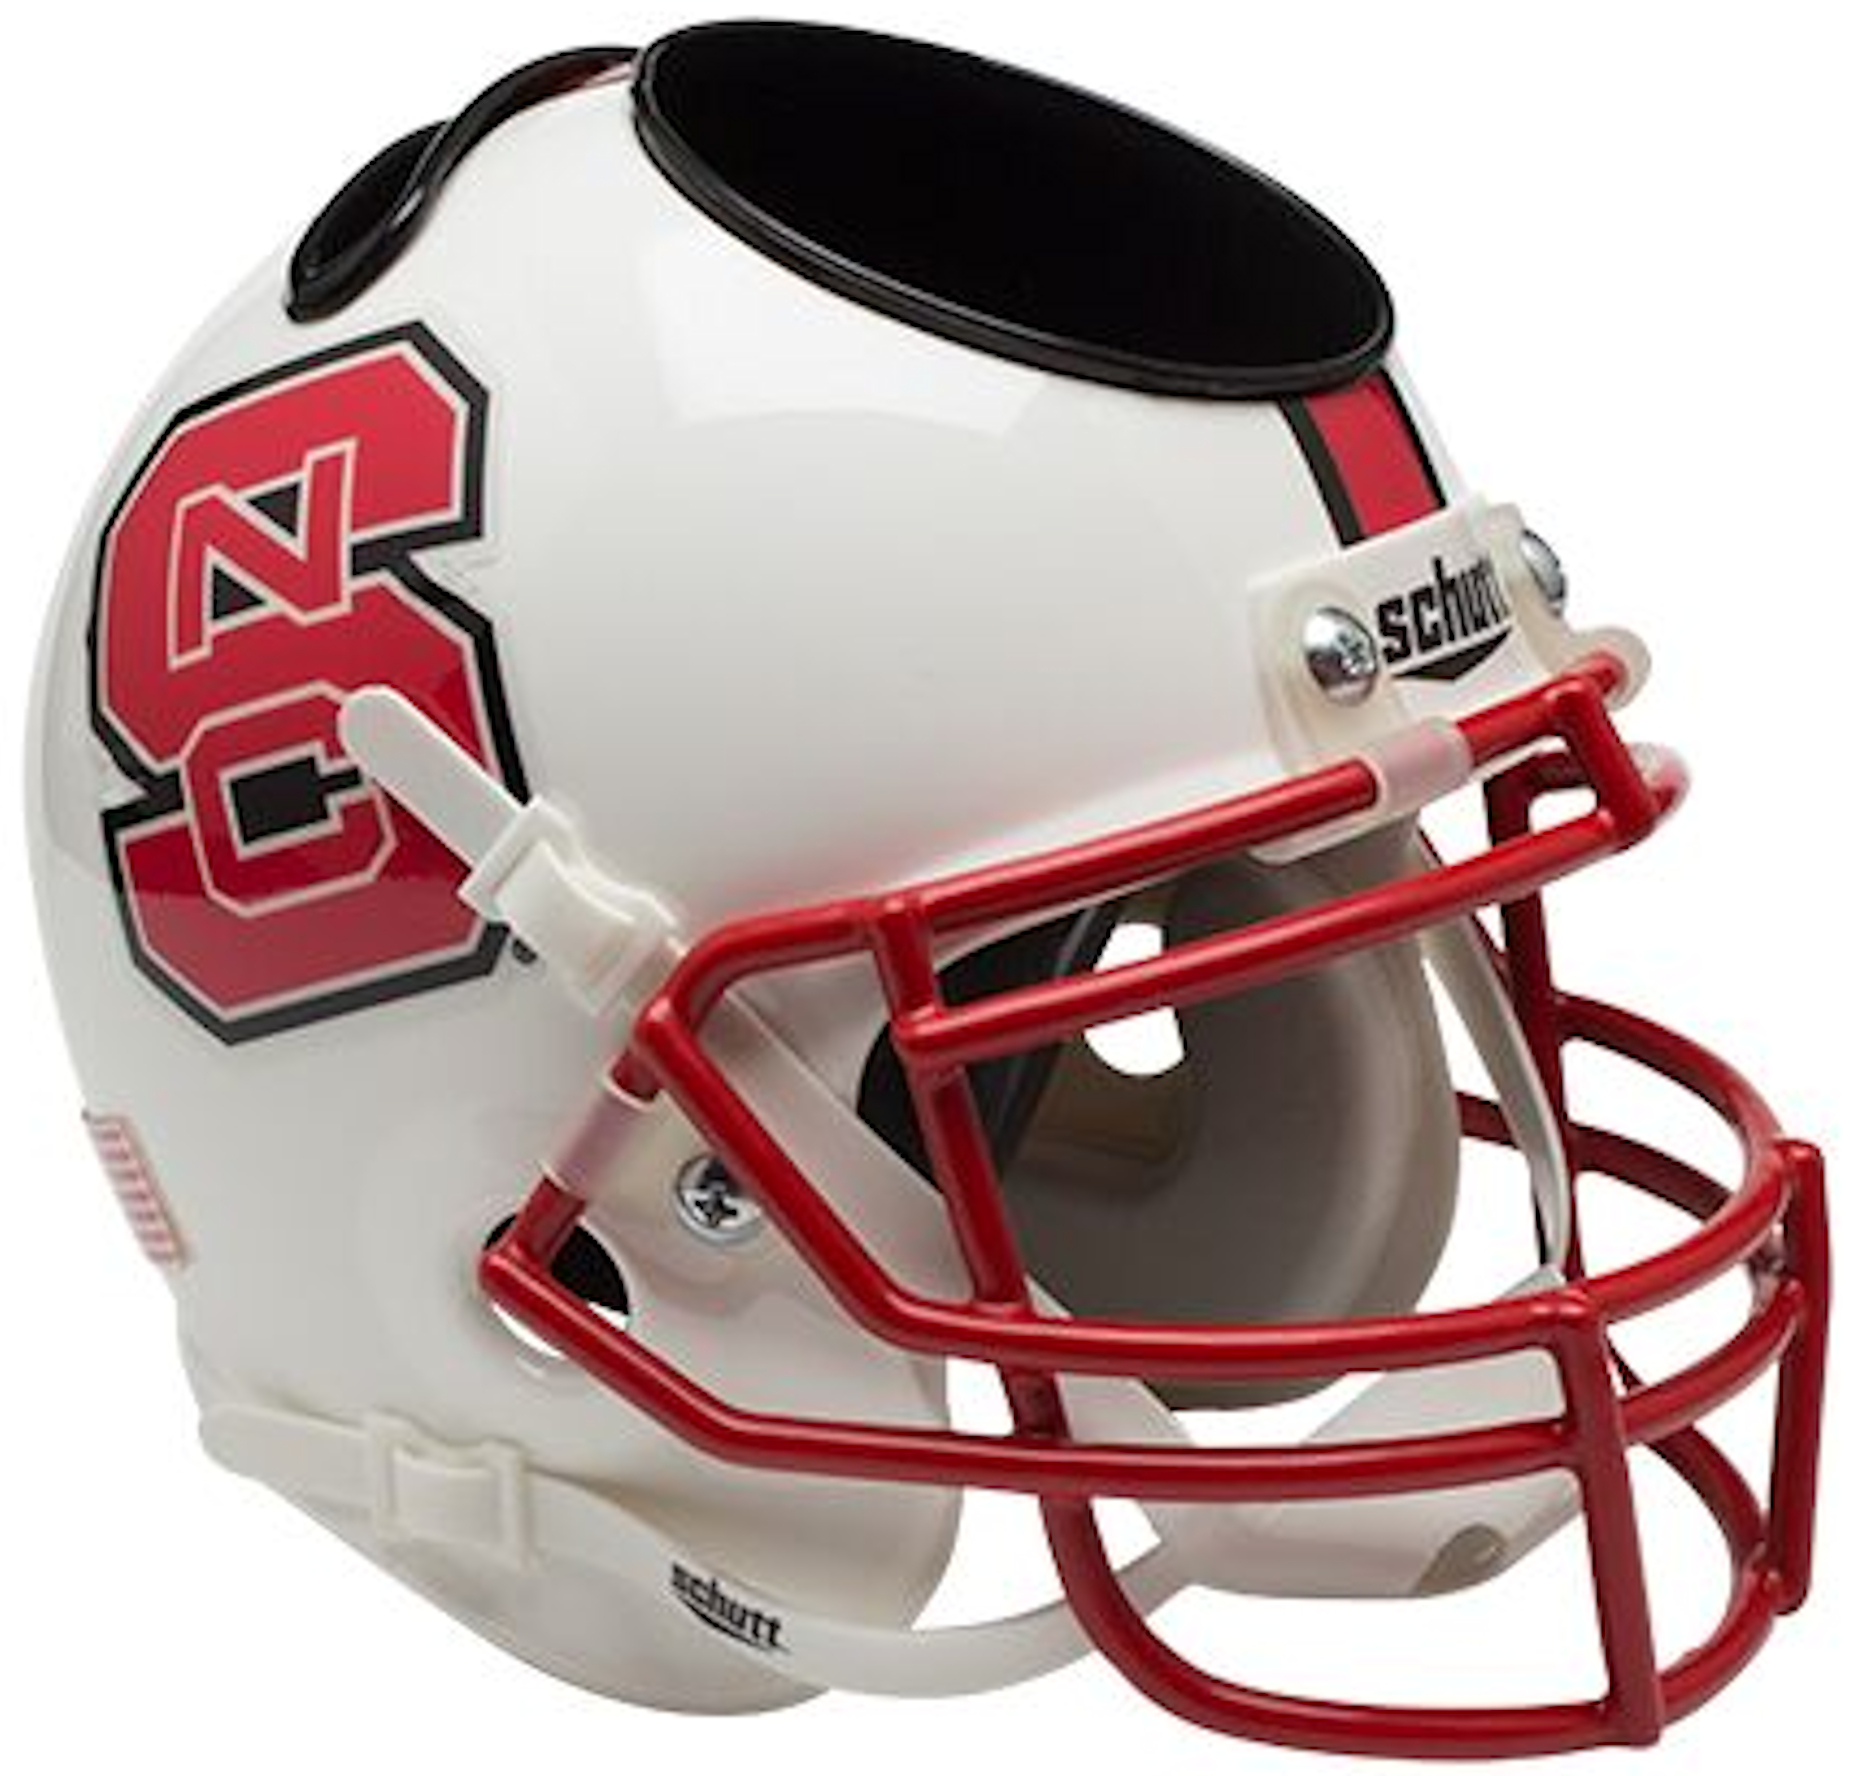 North Carolina State Wolfpack Miniature Football Helmet Desk Caddy